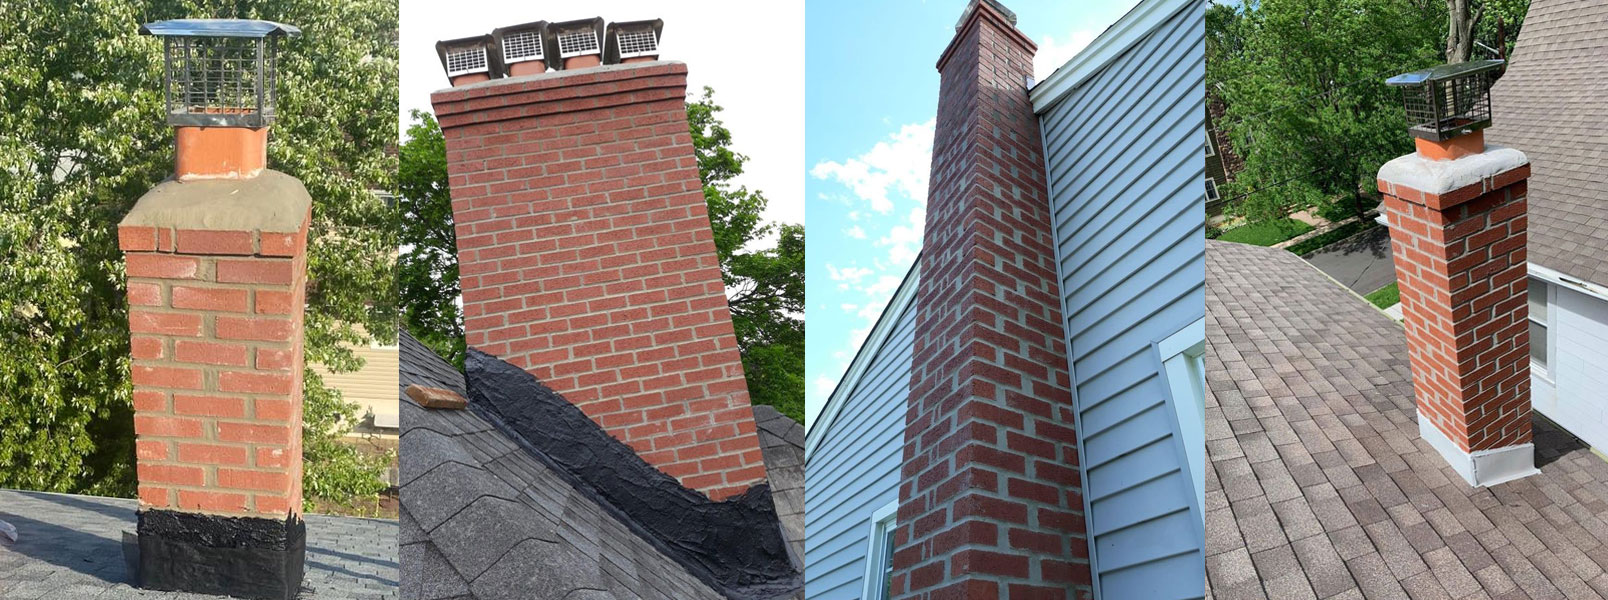 Chimney Repair Near Fairfield NJ